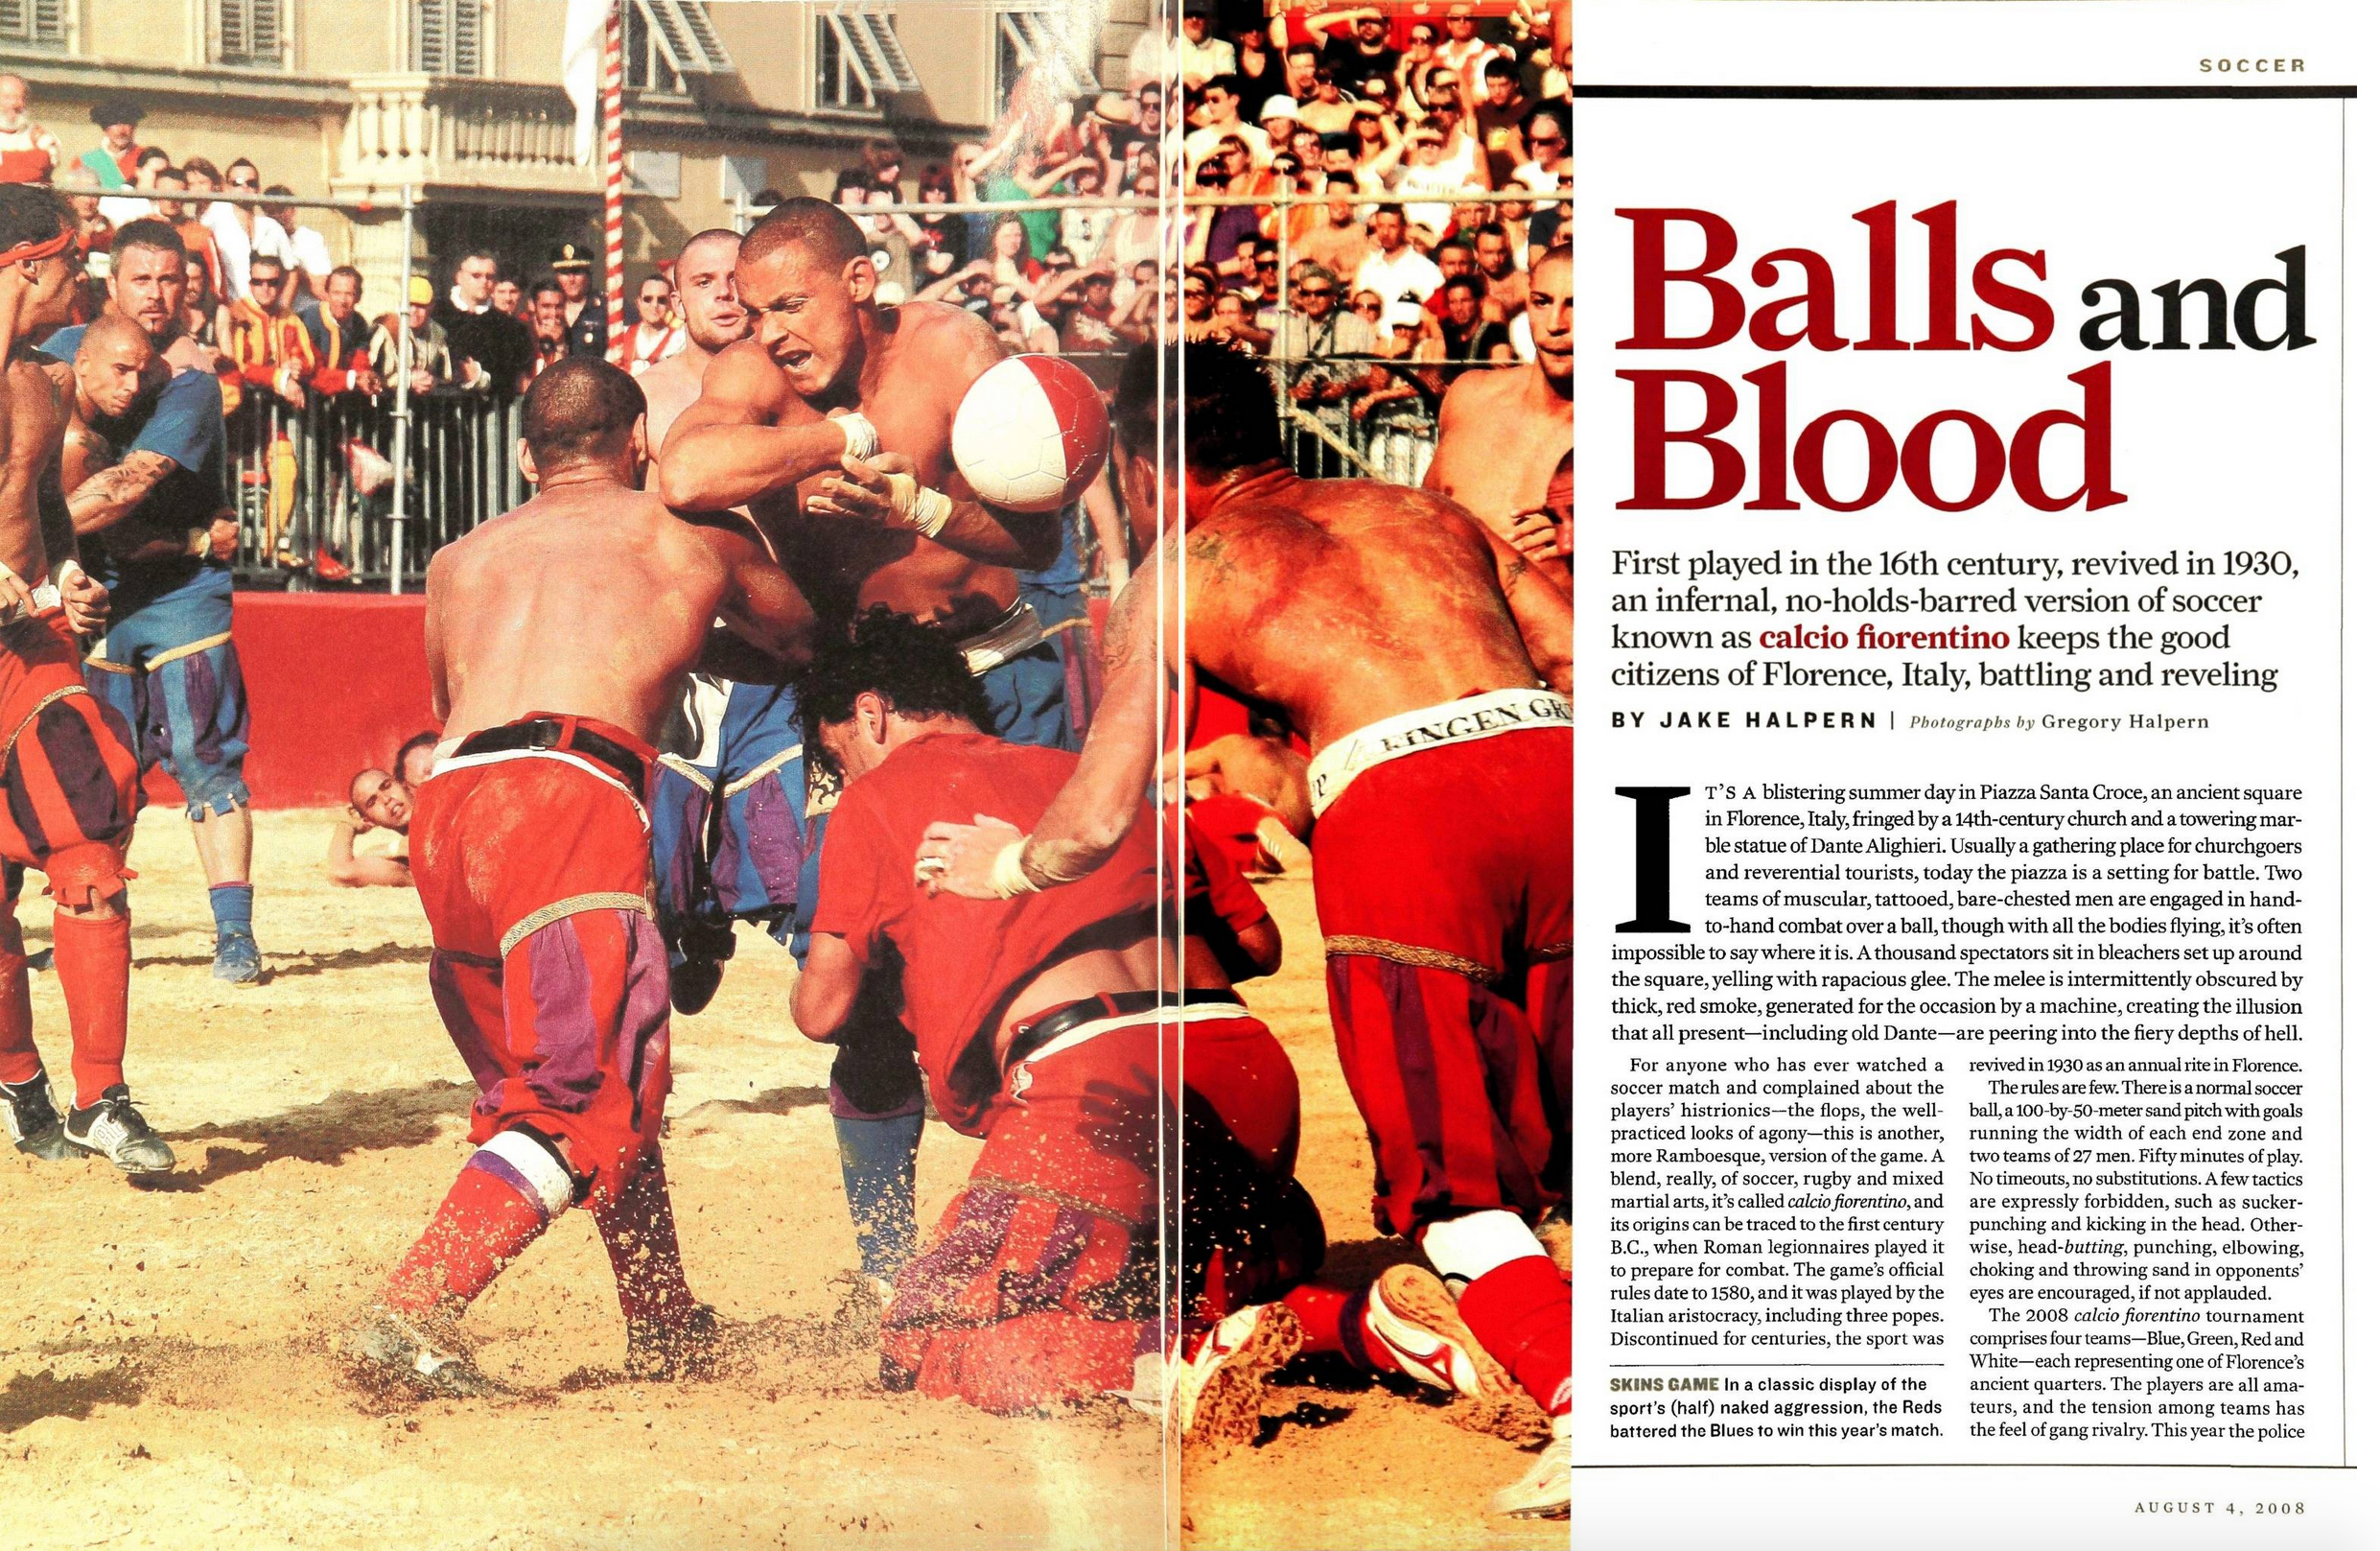 Balls and Blood on Sports Illustrated